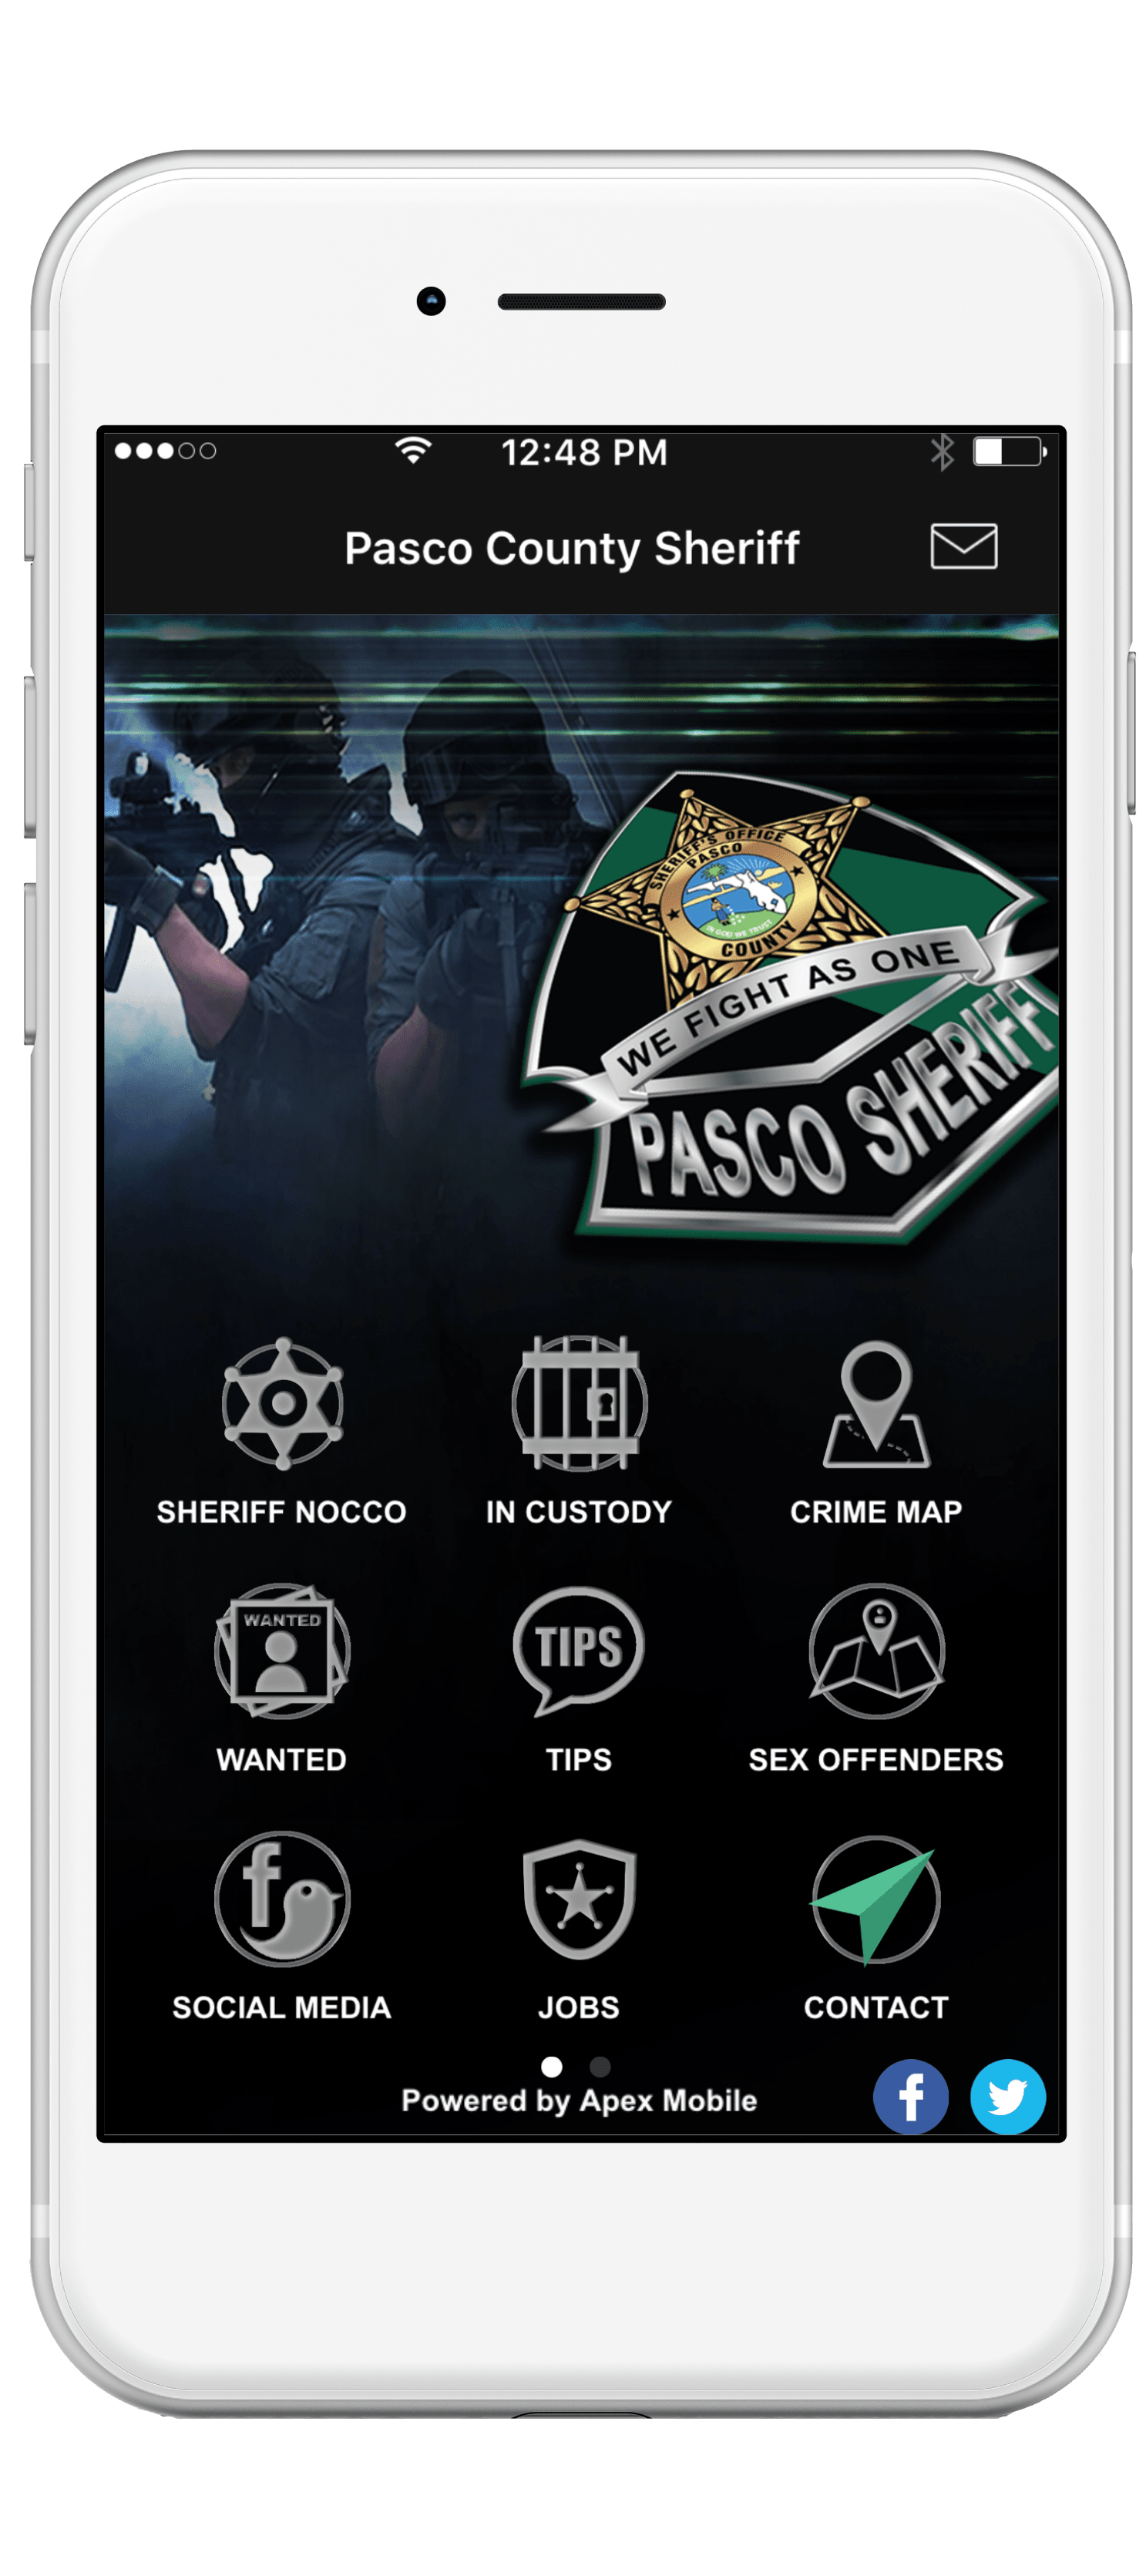 Pasco County Sheriff's Office - Apex Mobile Apps